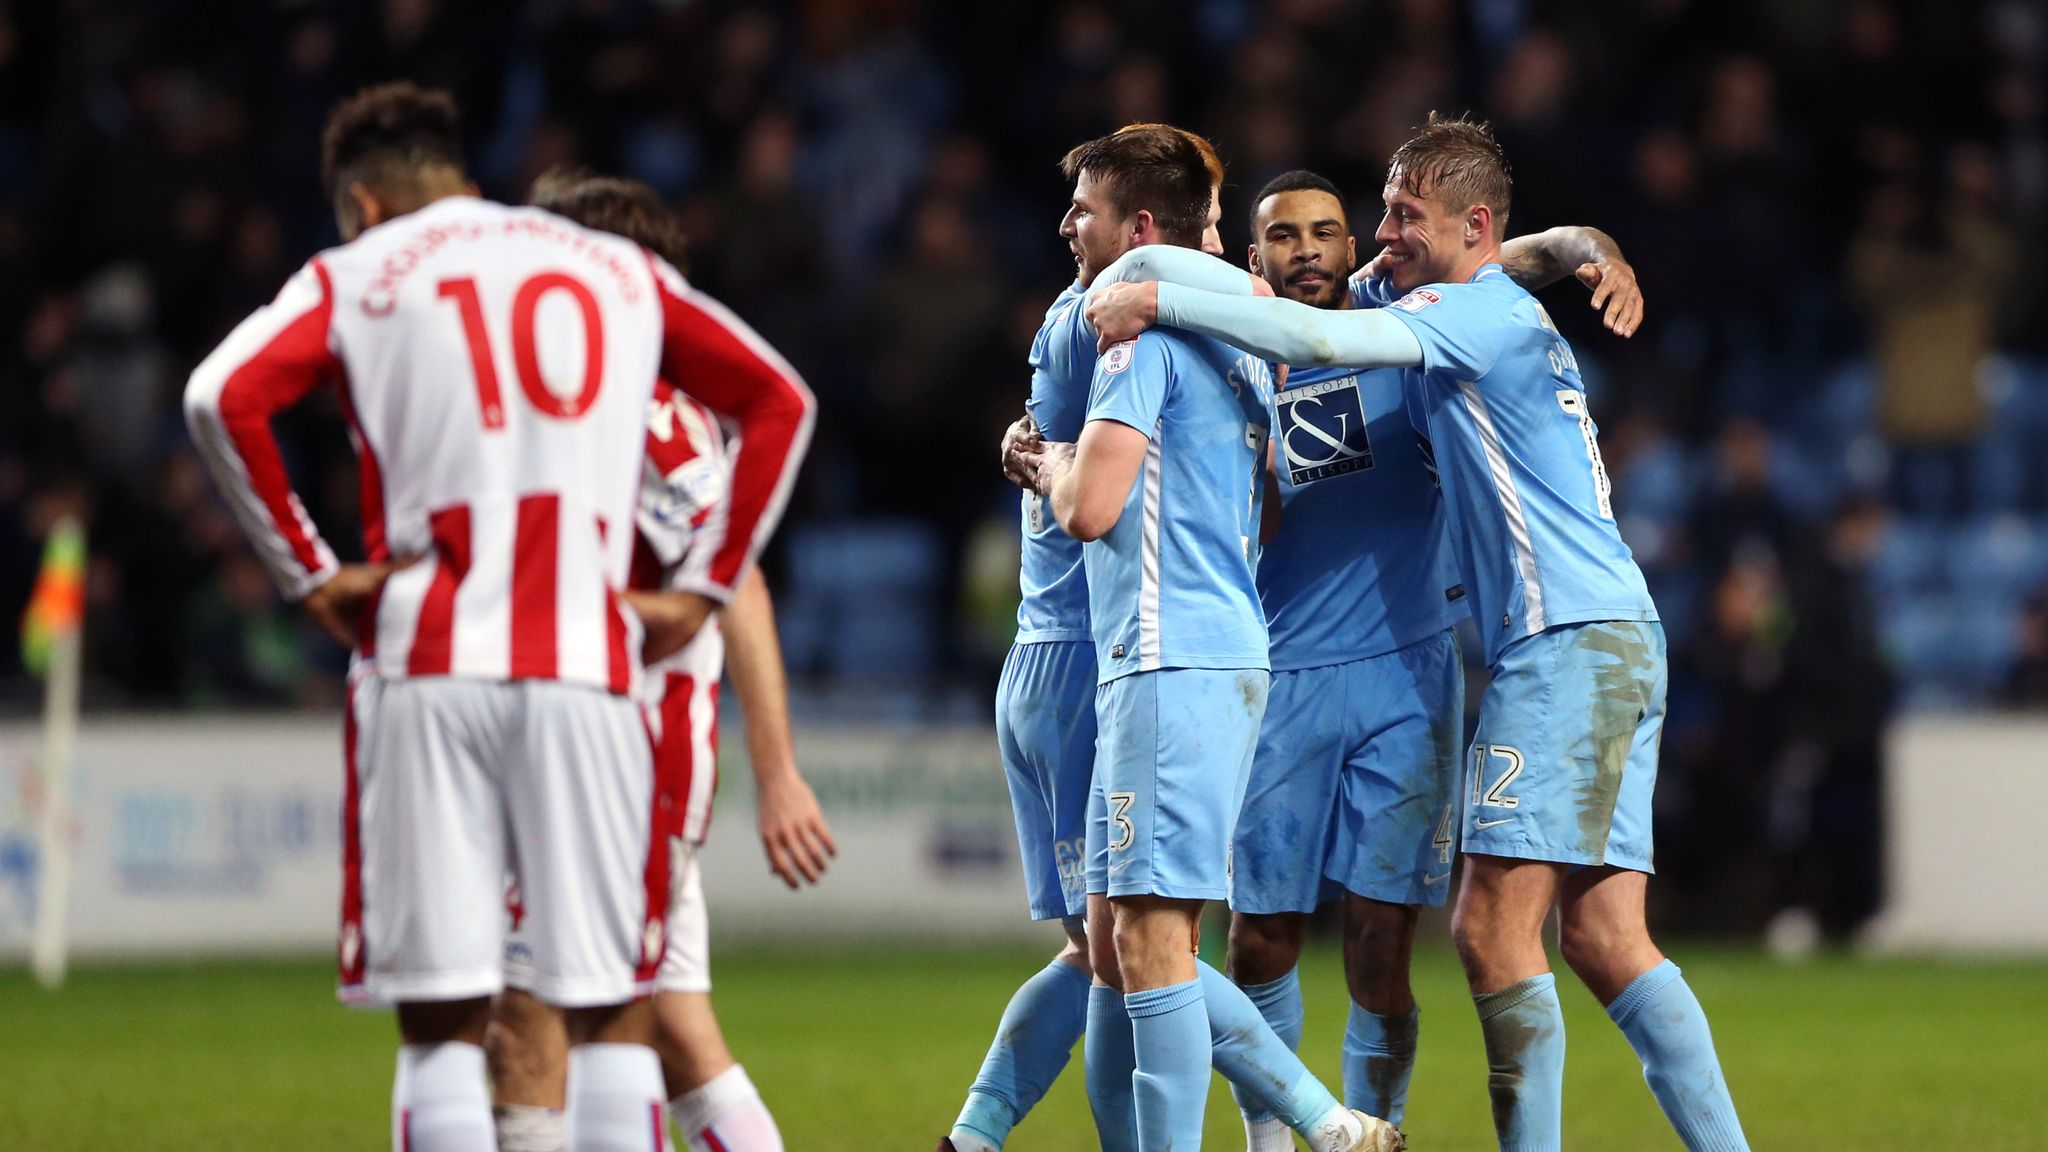 Coventry 2 1 Stoke Jack Grimmer Strike Knocks Premier League Stoke Out Of Fa Cup Football News Sky Sports